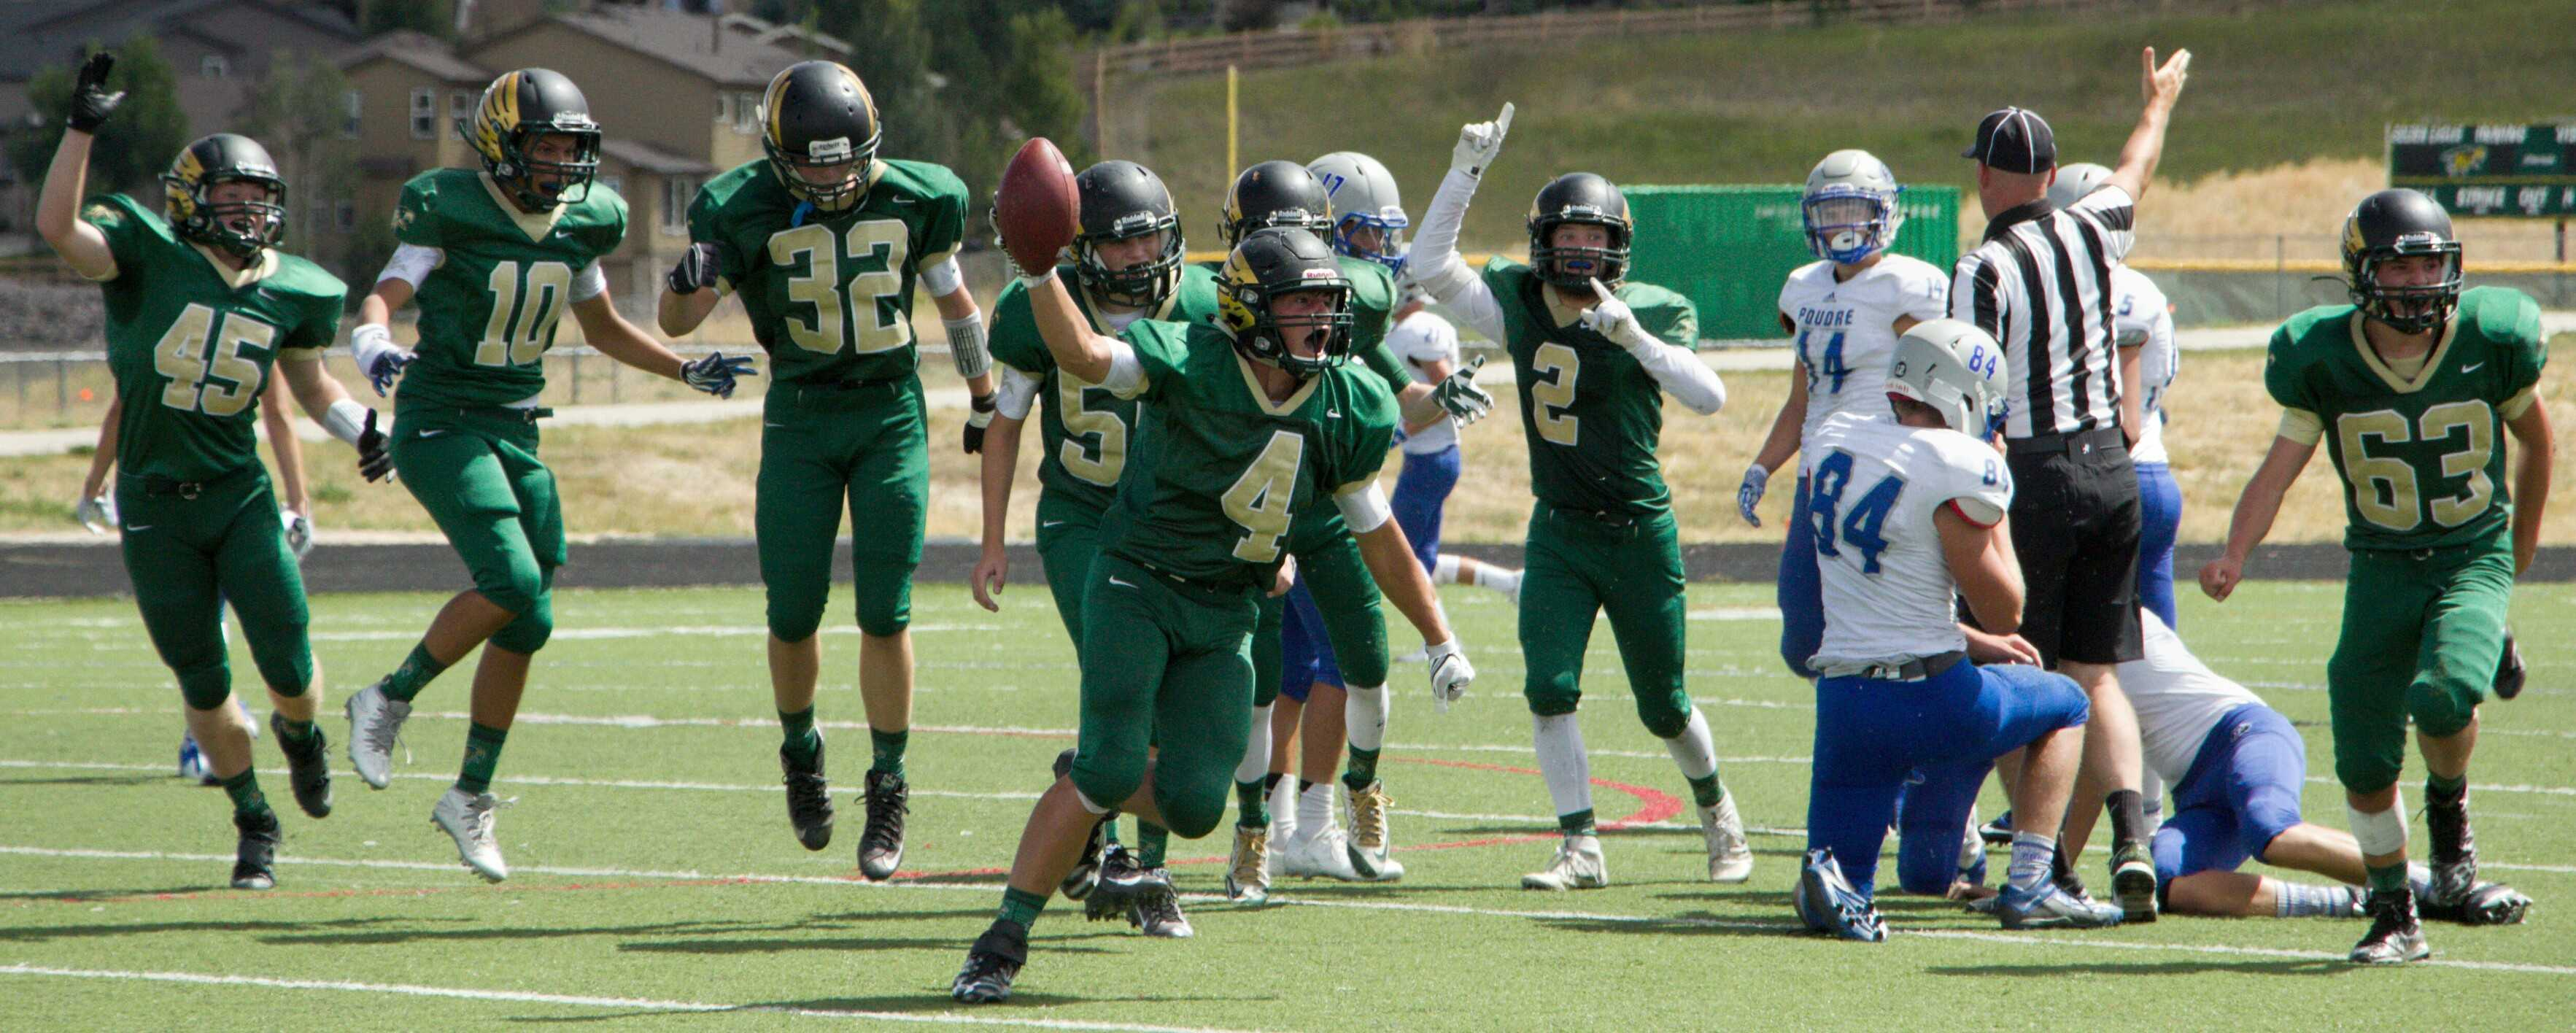 PHOTOS: JV Football vs. Poudre